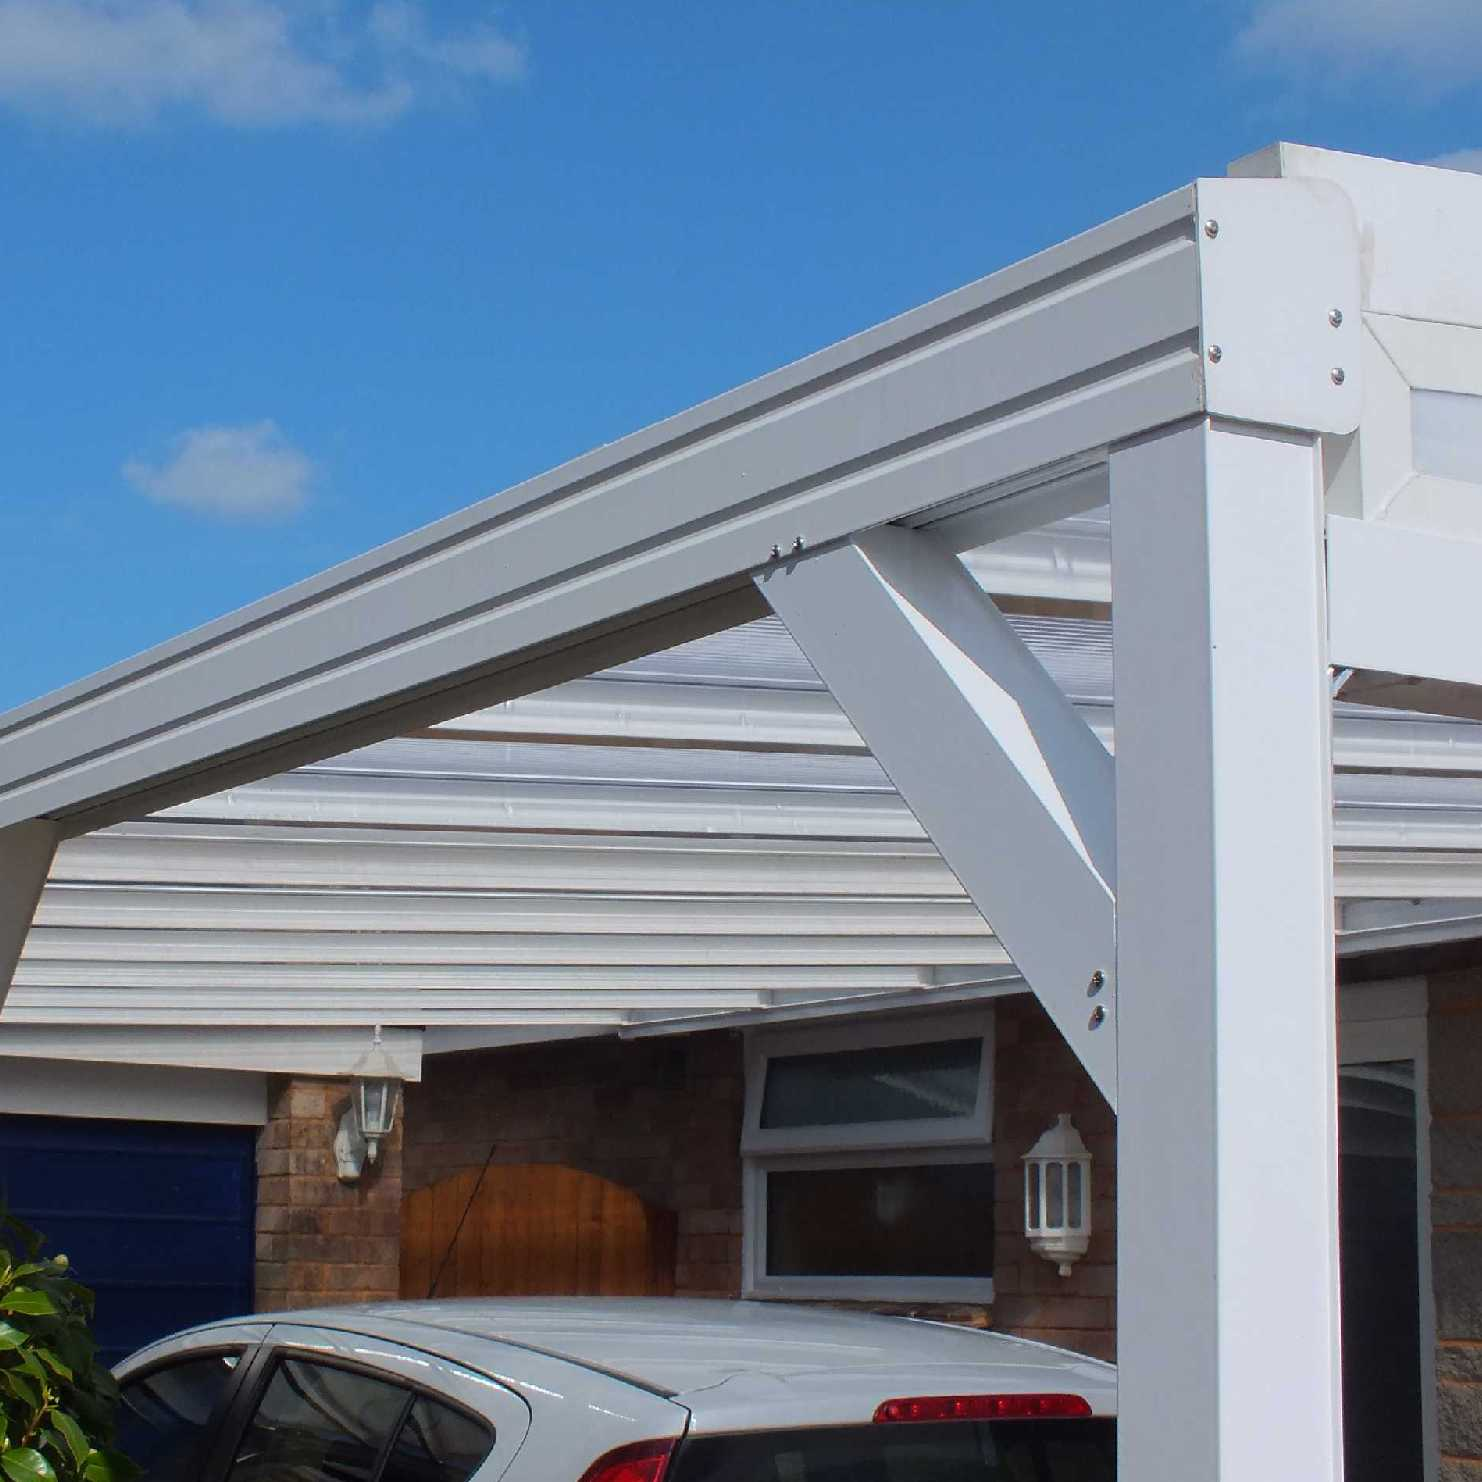 Great deals on Omega Smart Lean-To Canopy with 16mm Polycarbonate Glazing - 11.6m (W) x 2.5m (P), (5) Supporting Posts